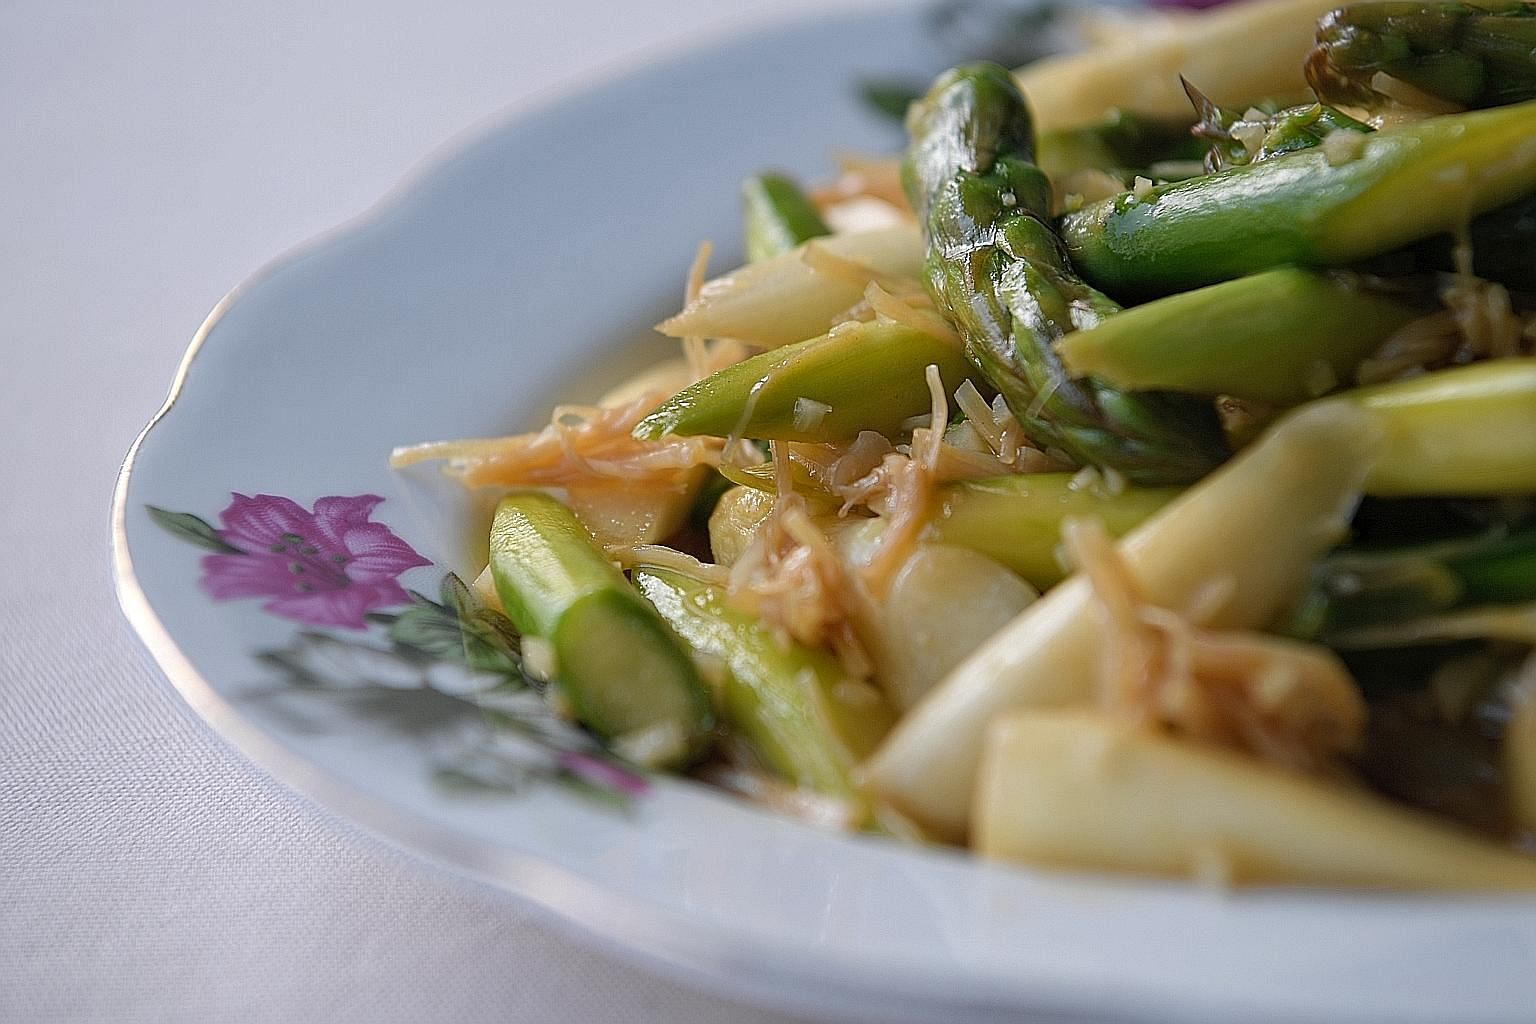 Adding lemon juice to the asparagus cuts the richness of the oyster sauce.